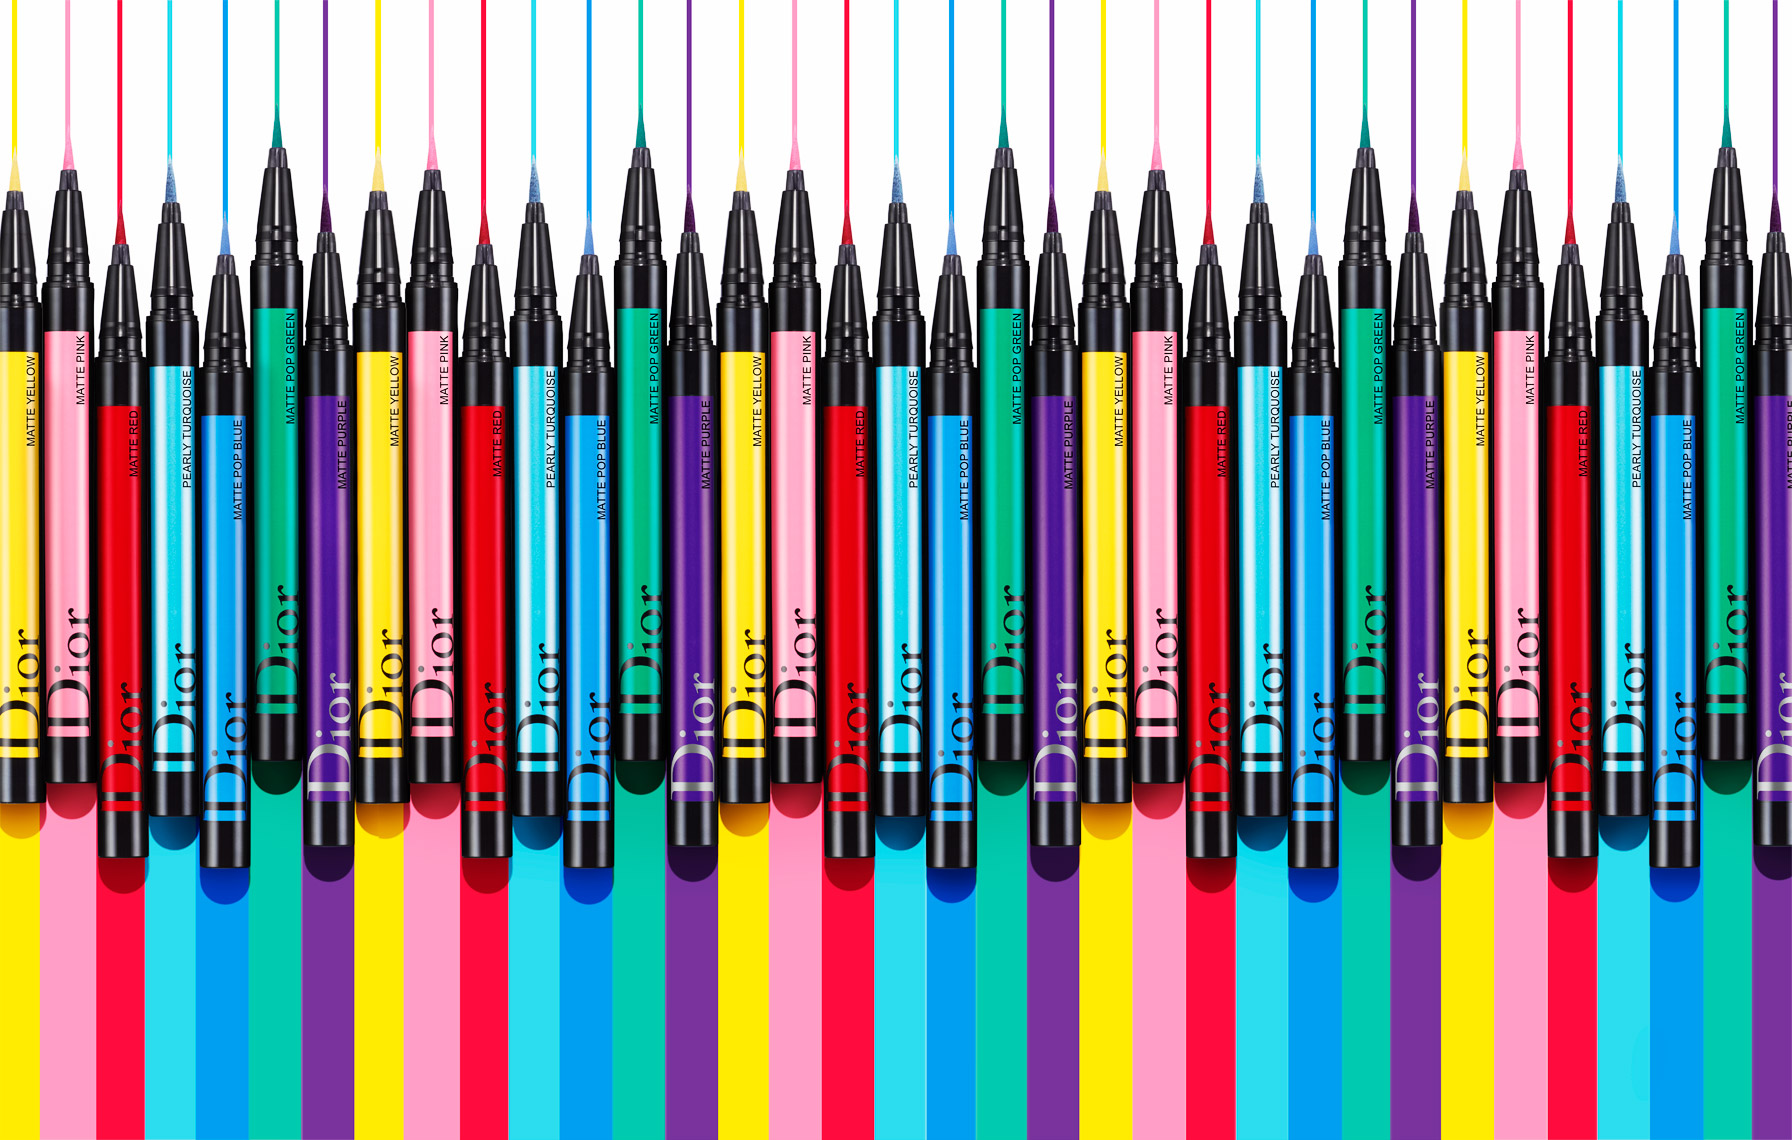 Dior_Pencils_Horizontal